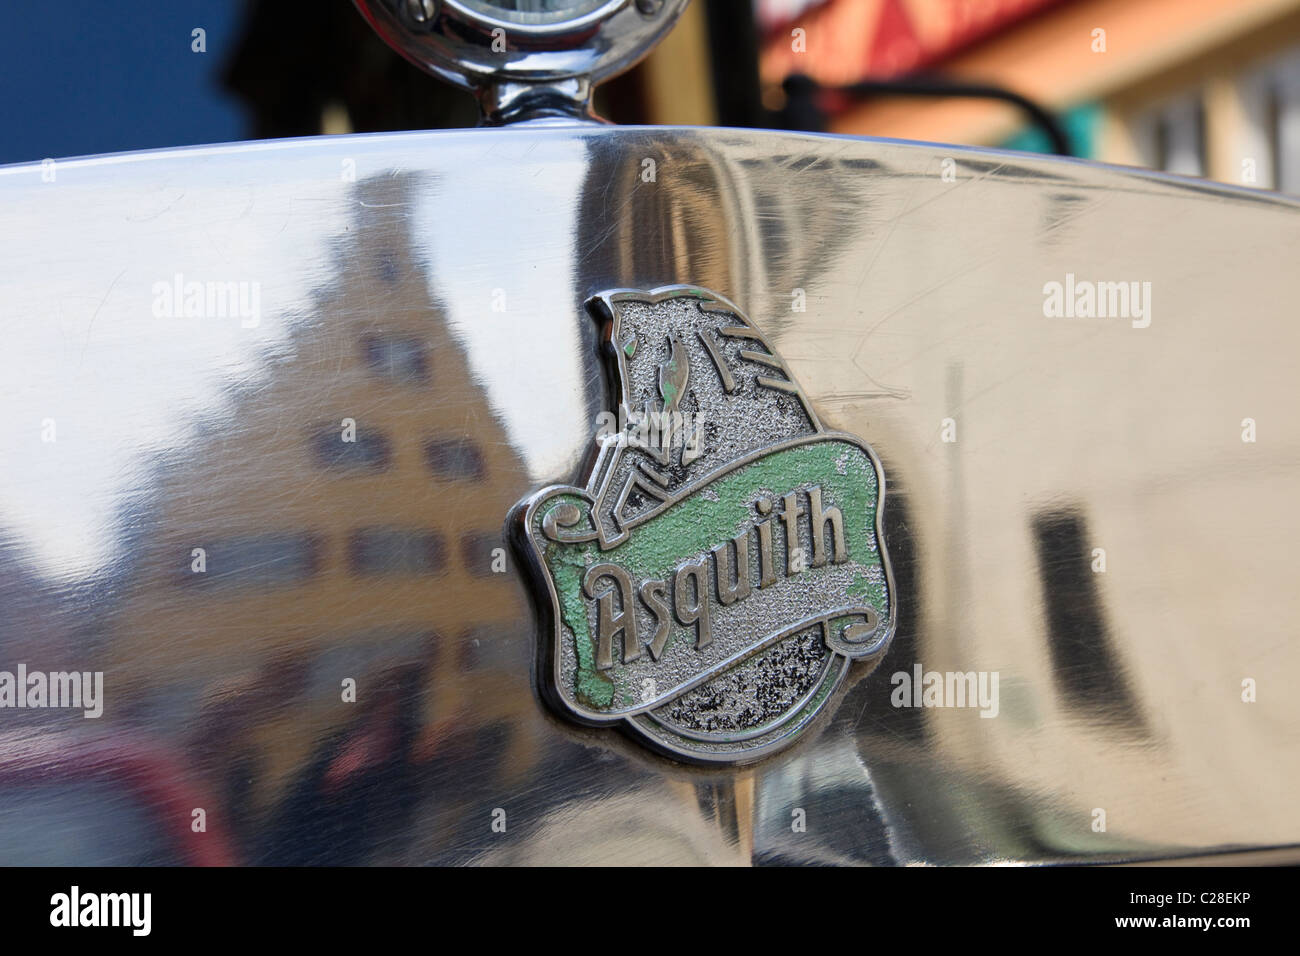 Maker's badge on the bonnet of an old Asquith vintage car with medieval buildings reflected in the chromework - Stock Image